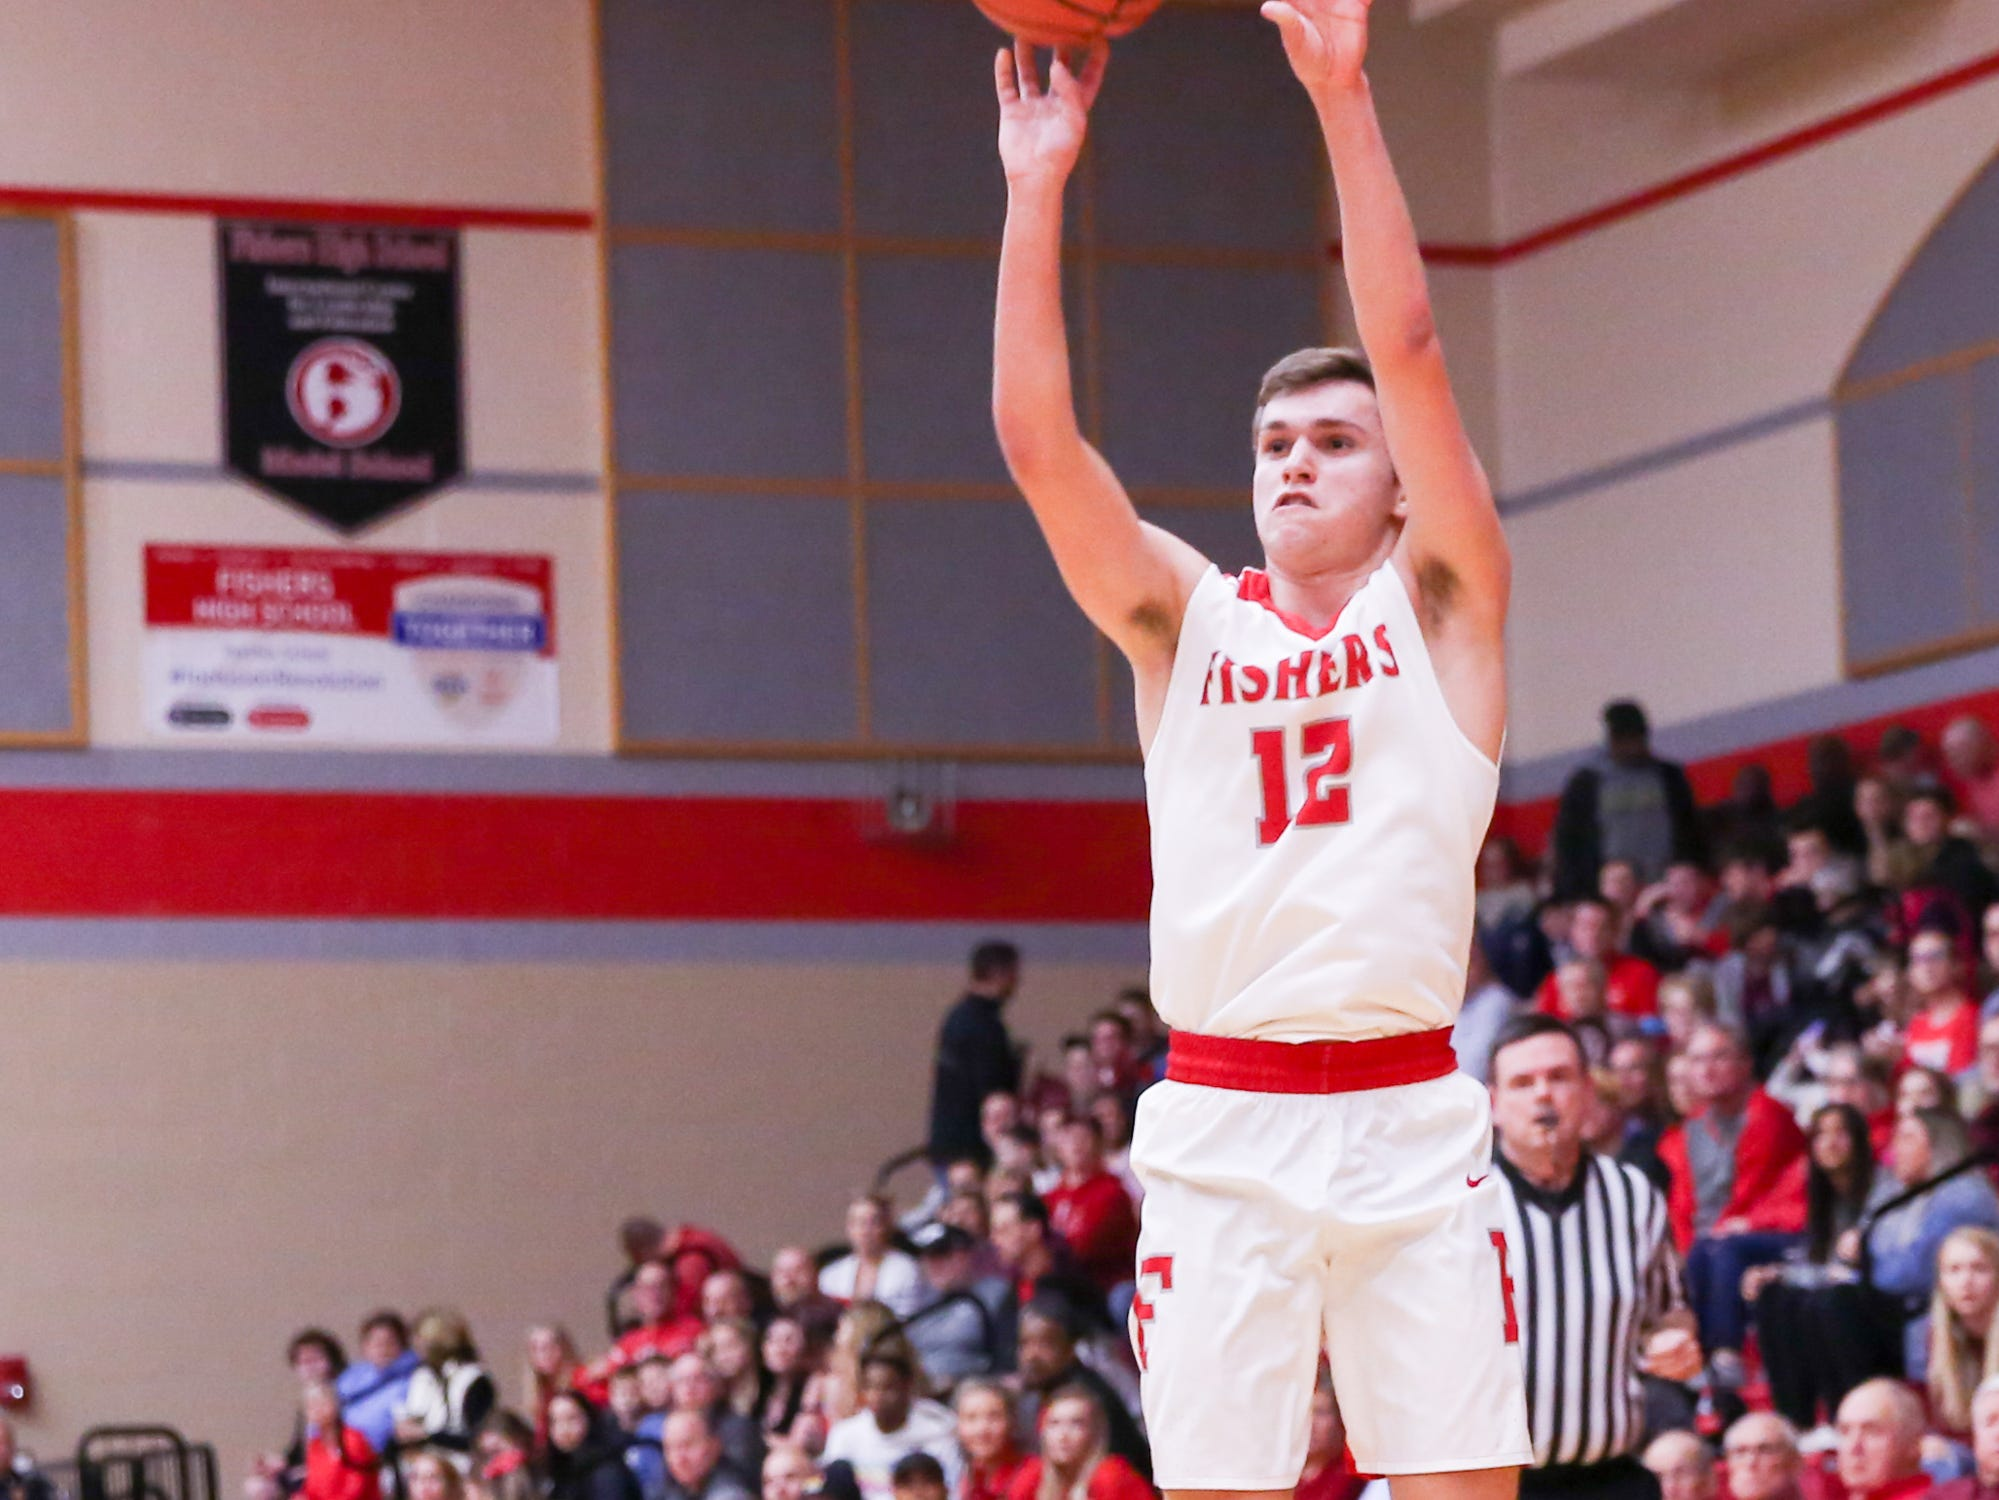 Fisher's Alex Szilagyi (12) with the 3 point attempt during the first half of Zionsville vs. Fishers high school boys varsity basketball game held at Fishers High School, February 15, 2019.